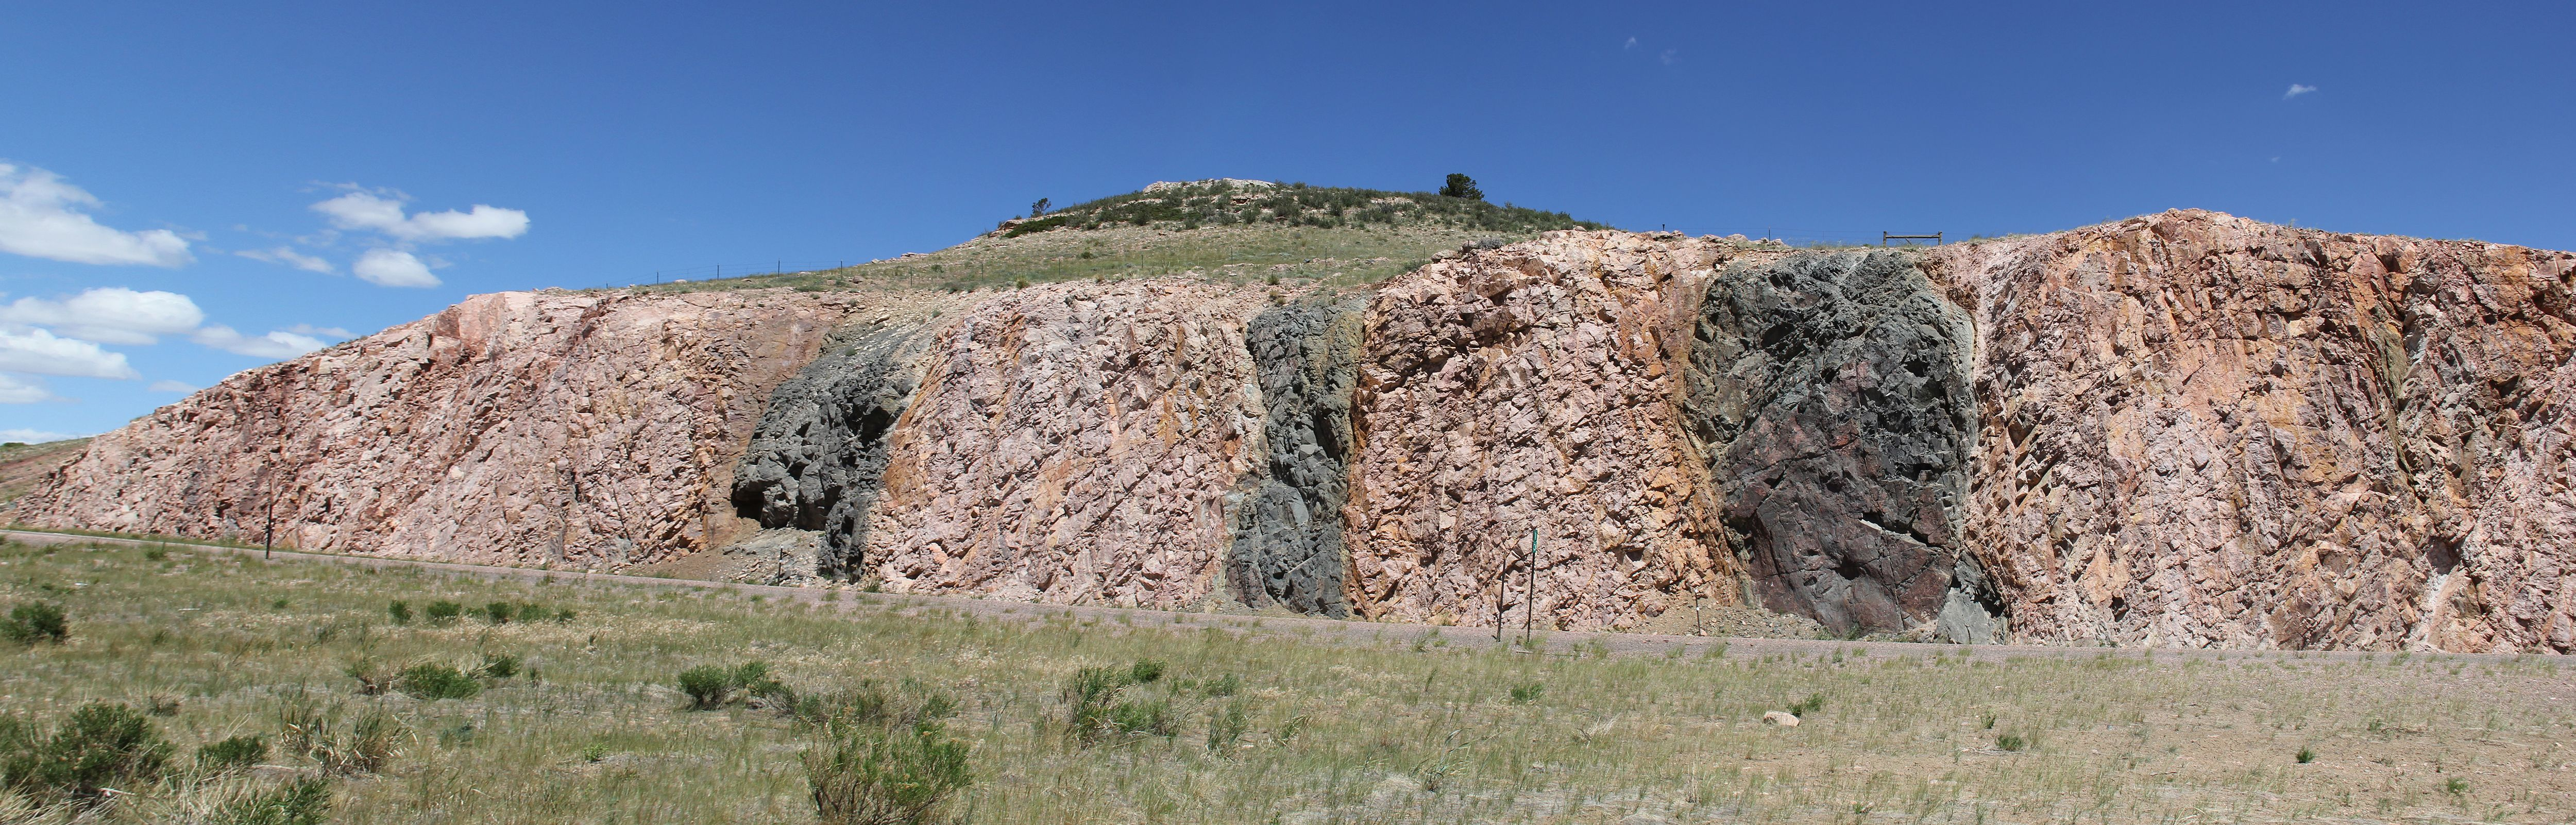 Laramie Range at Morton Pass, Wyoming.  Paleoproterozoic (ca. 2 bya) mafic dikes (dark) cross-cut an older Archean (ca. 2.7+ bya) granitic/gneissic complex (light). ...